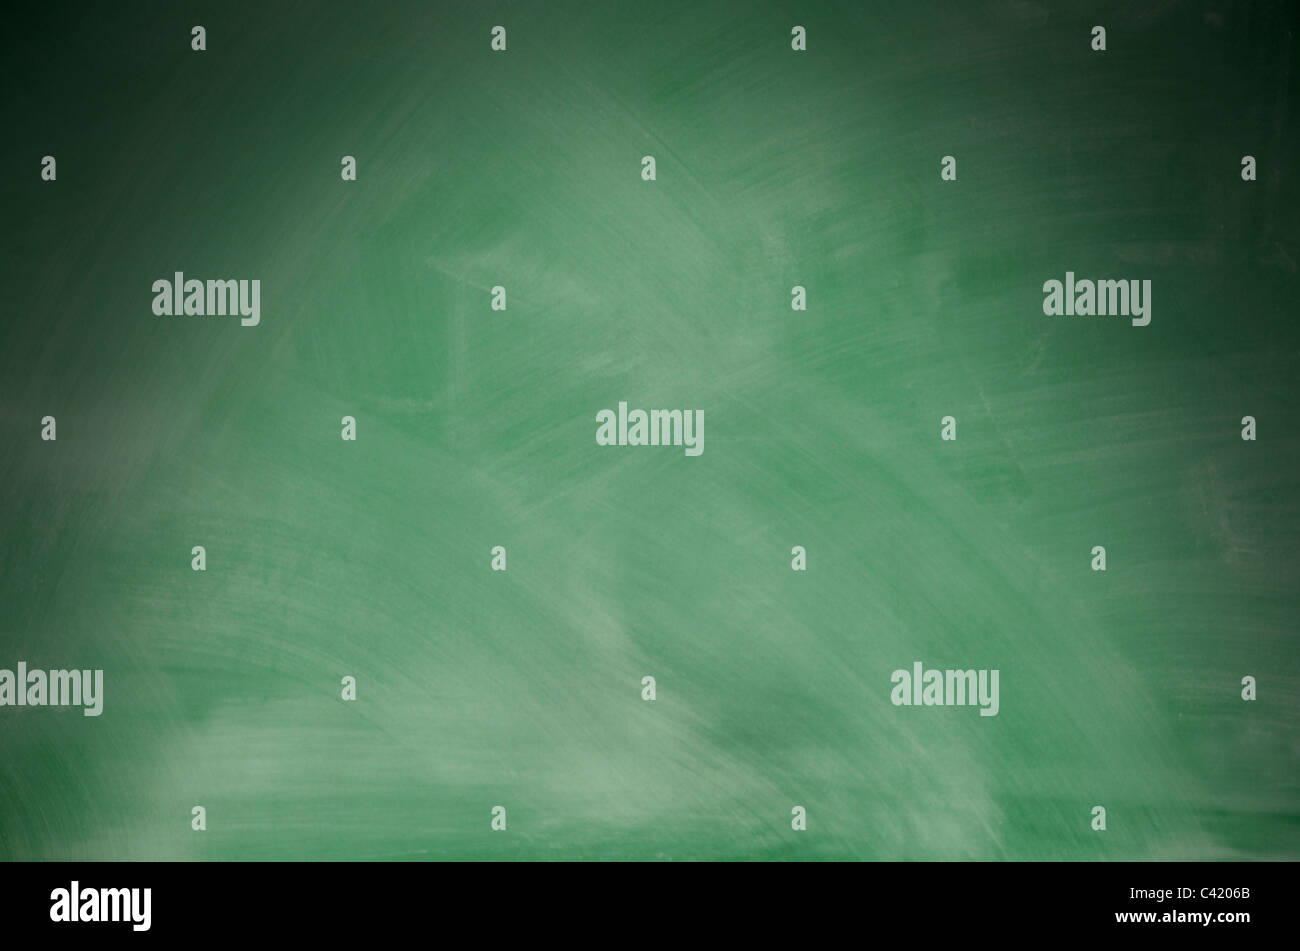 Green chalkboard with eraser marks lit dramatically from above - Stock Image